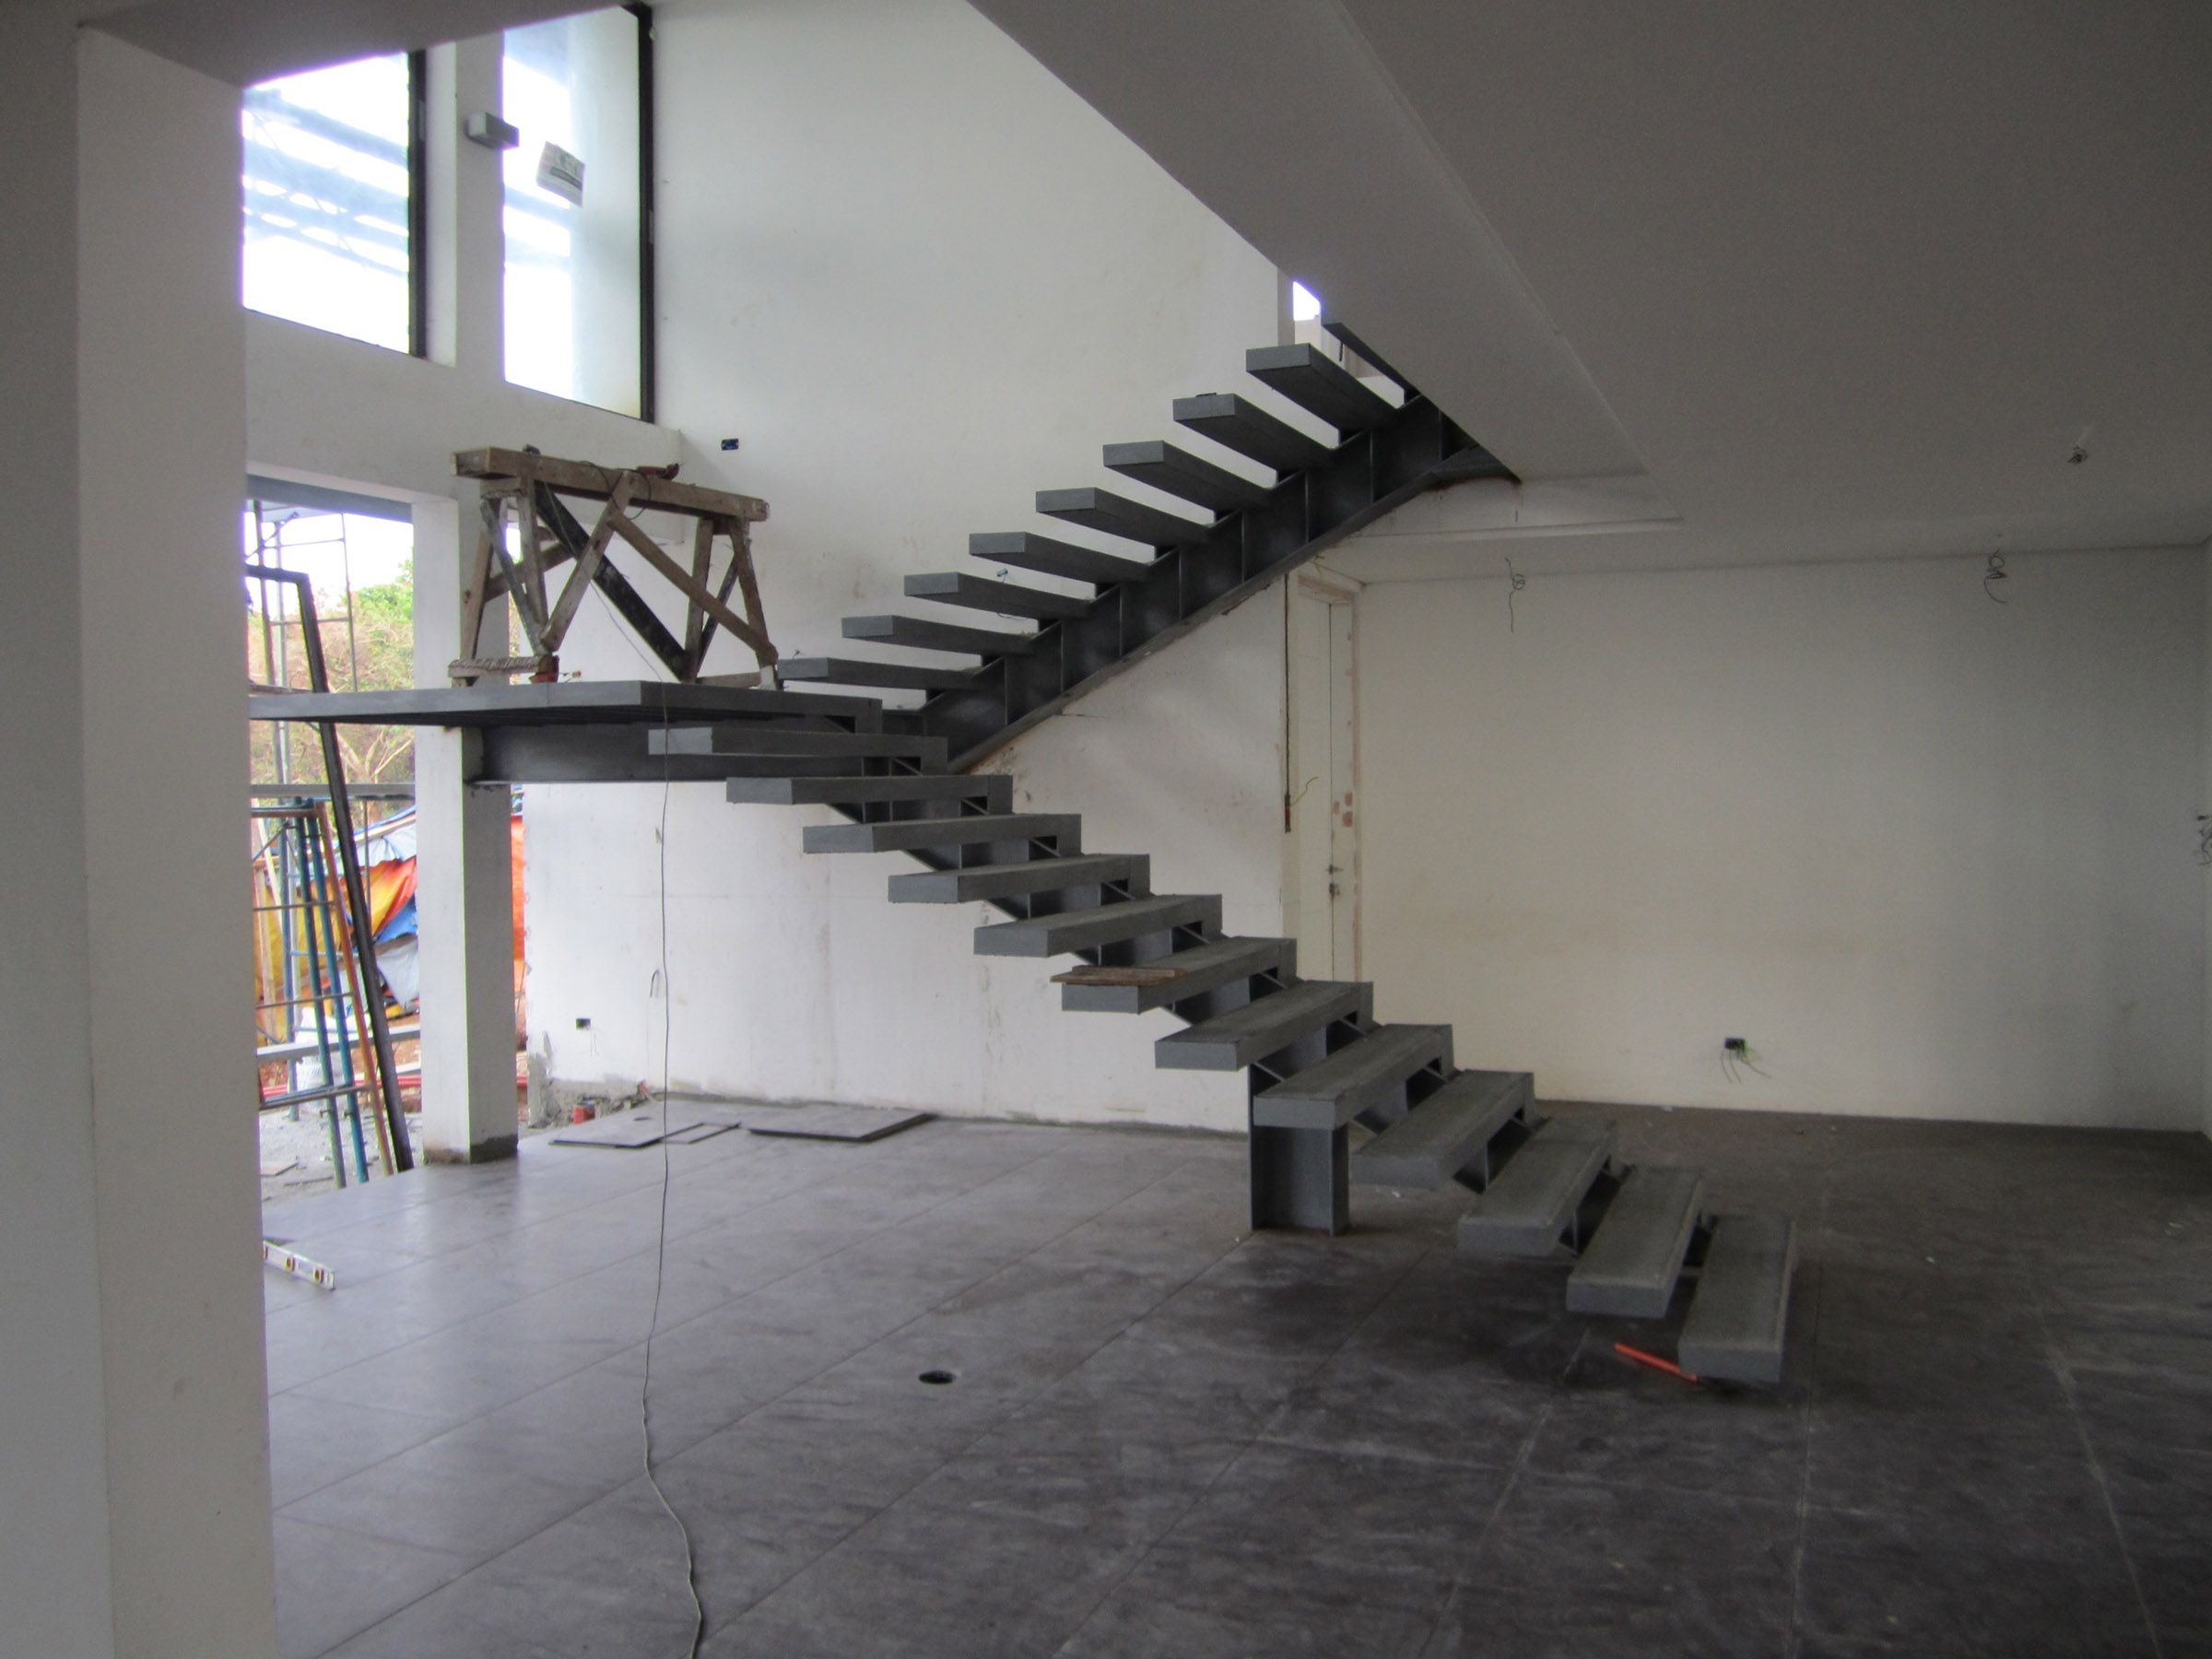 A Modern Cantilever Staircase In Steel And Wood.